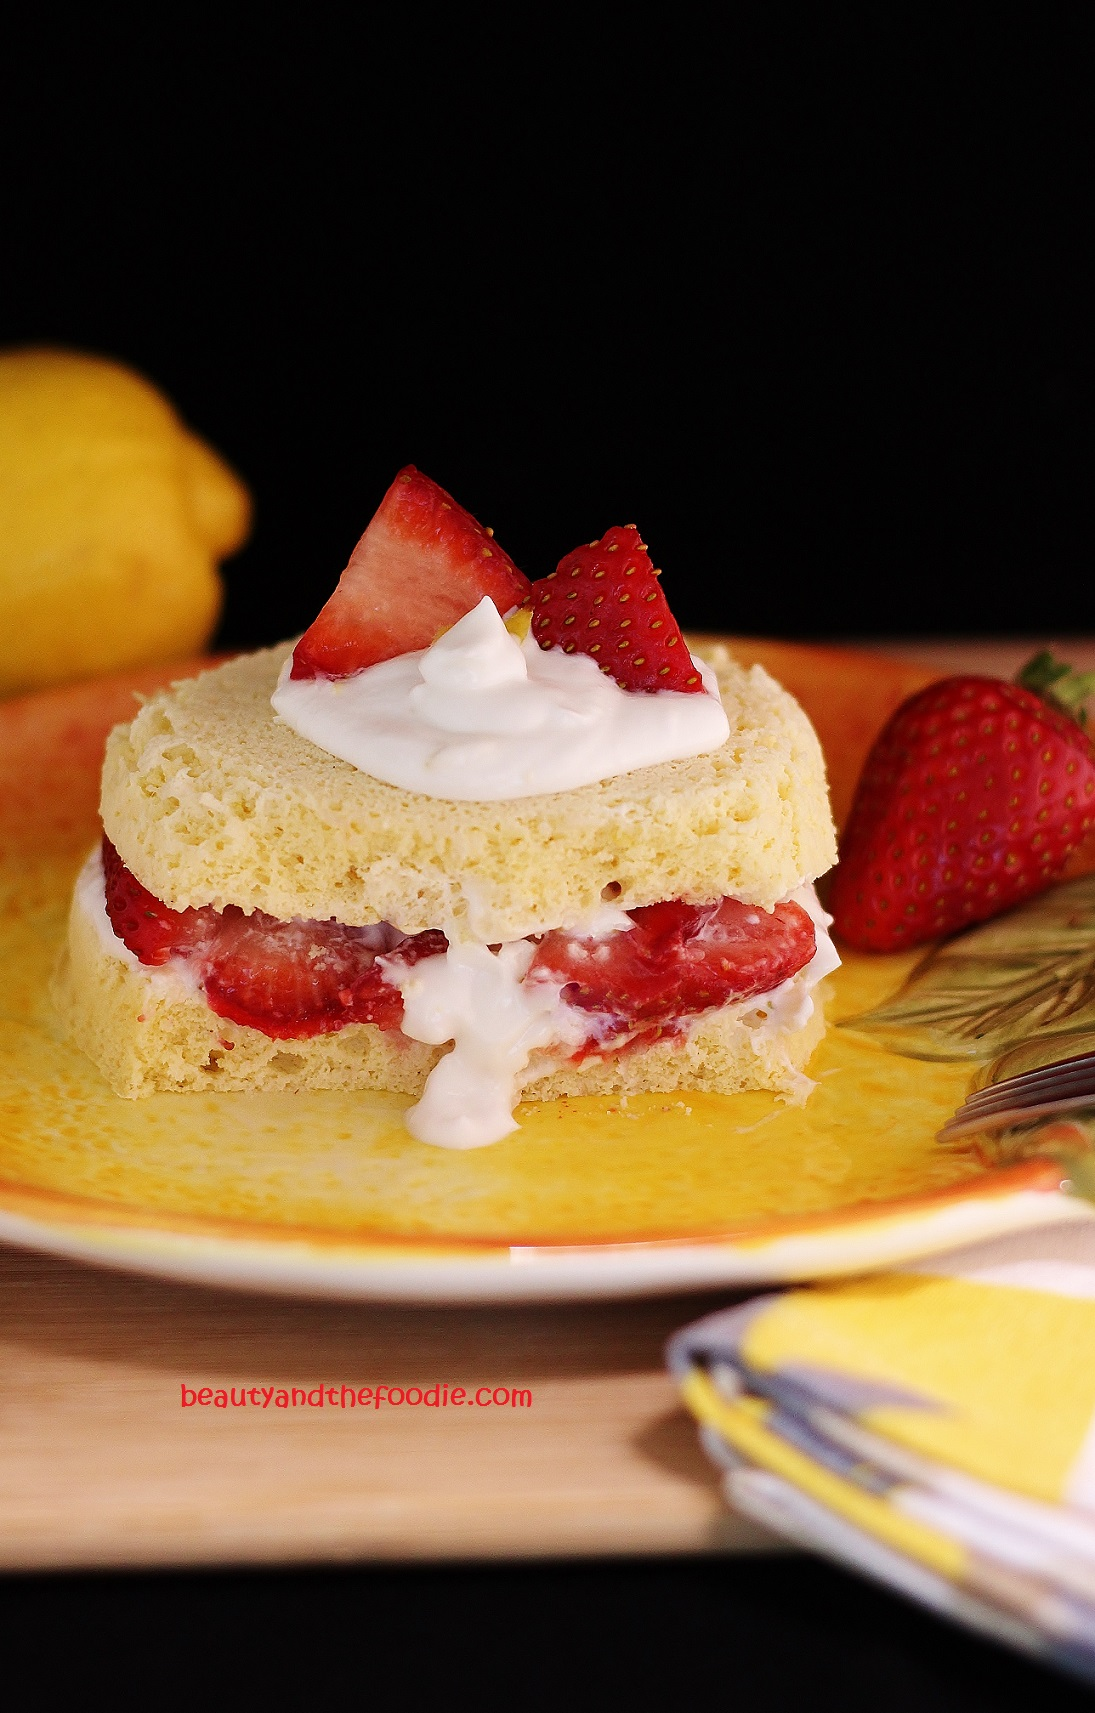 Quick Paleo Strawberry Lemon Shortcake. Conference Room Stickers. Pinterest Murals. Cut Out Lettering. Fairy Wall Stickers. Underwate Scene Murals. Tin Parade Banners. Shower Banners. Merdeka Murals